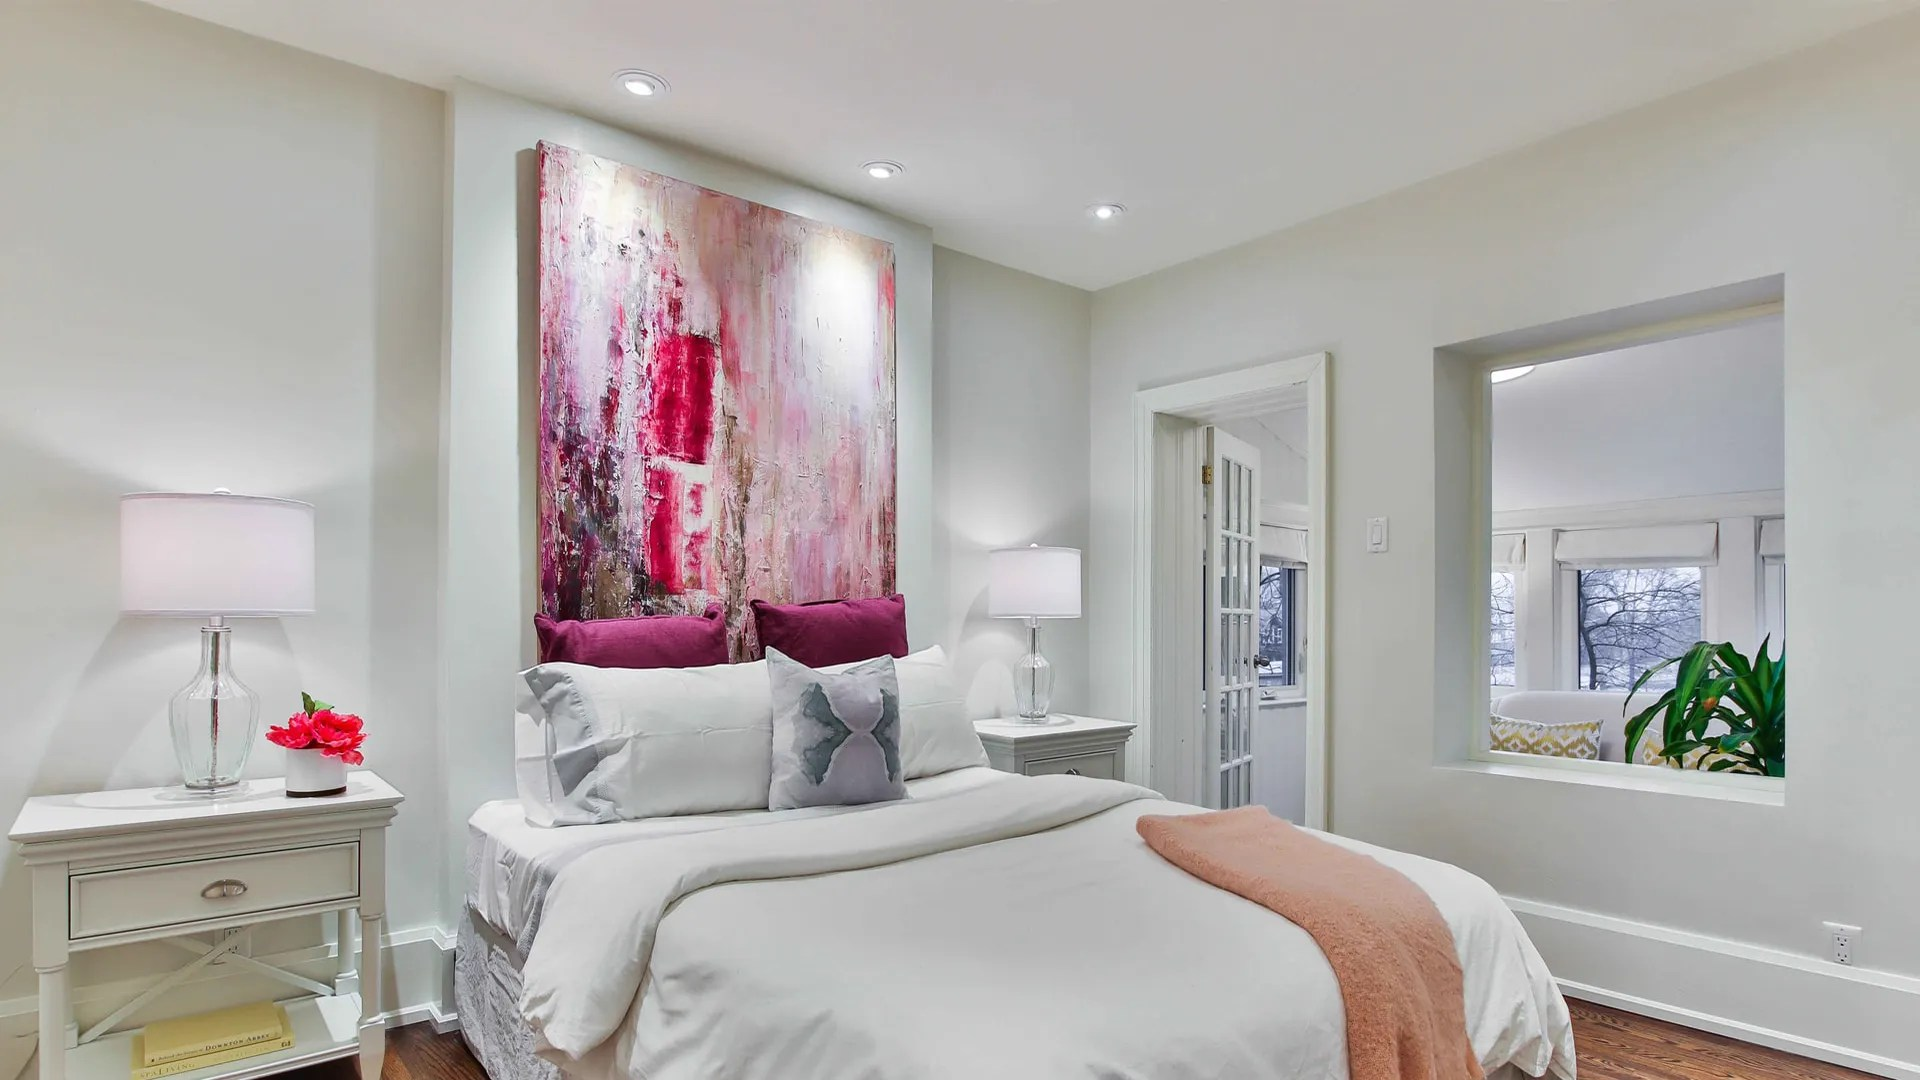 7 ways to light up rooms with low